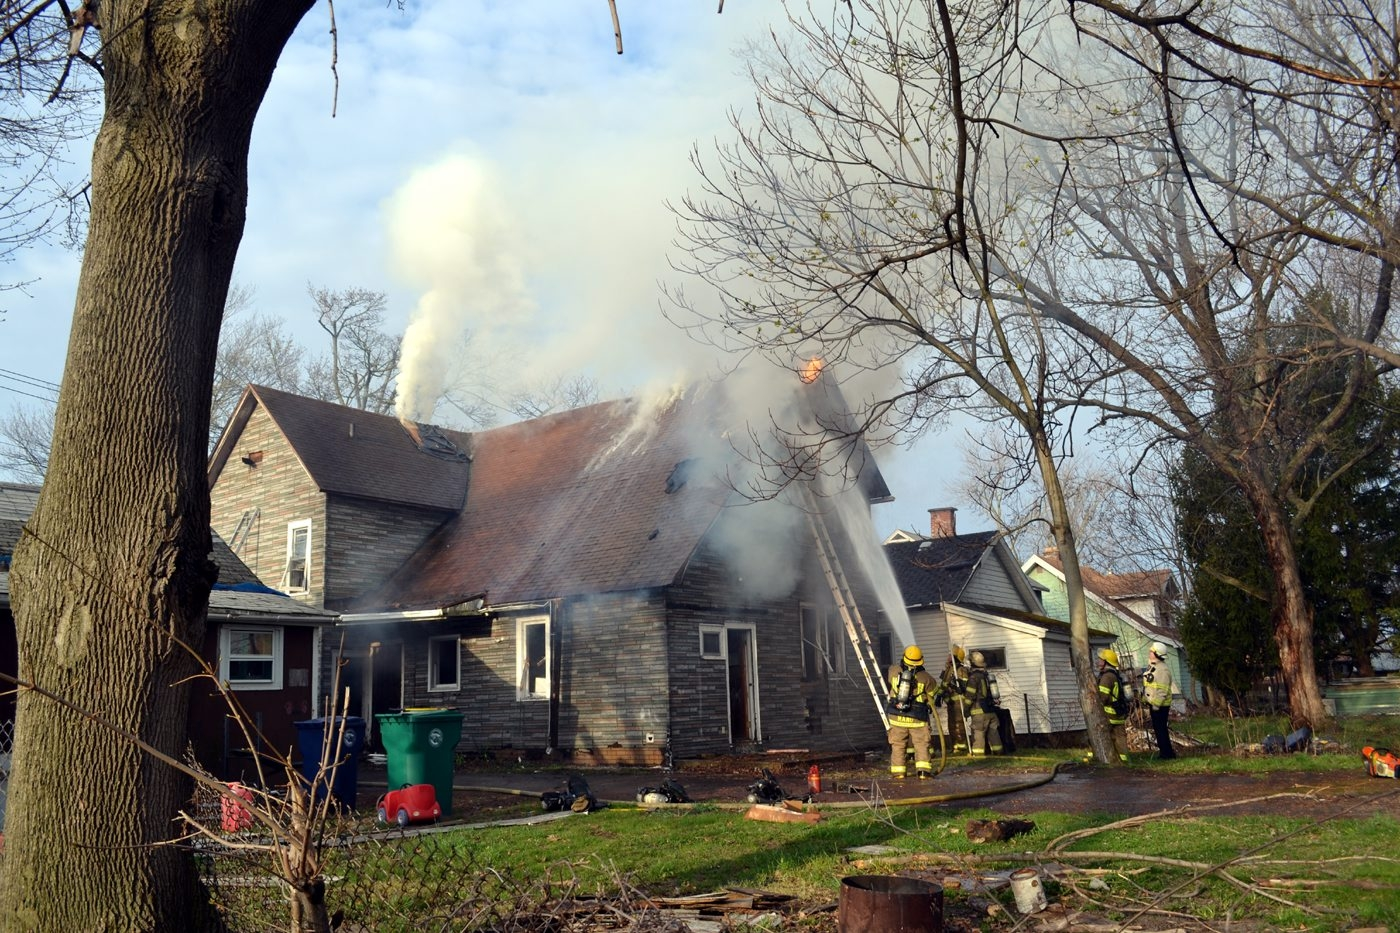 Niagara Falls crews were delayed in fighting this Pierce Avenue fire Thursday because a hydrant in front of the house had insufficient water pressure.